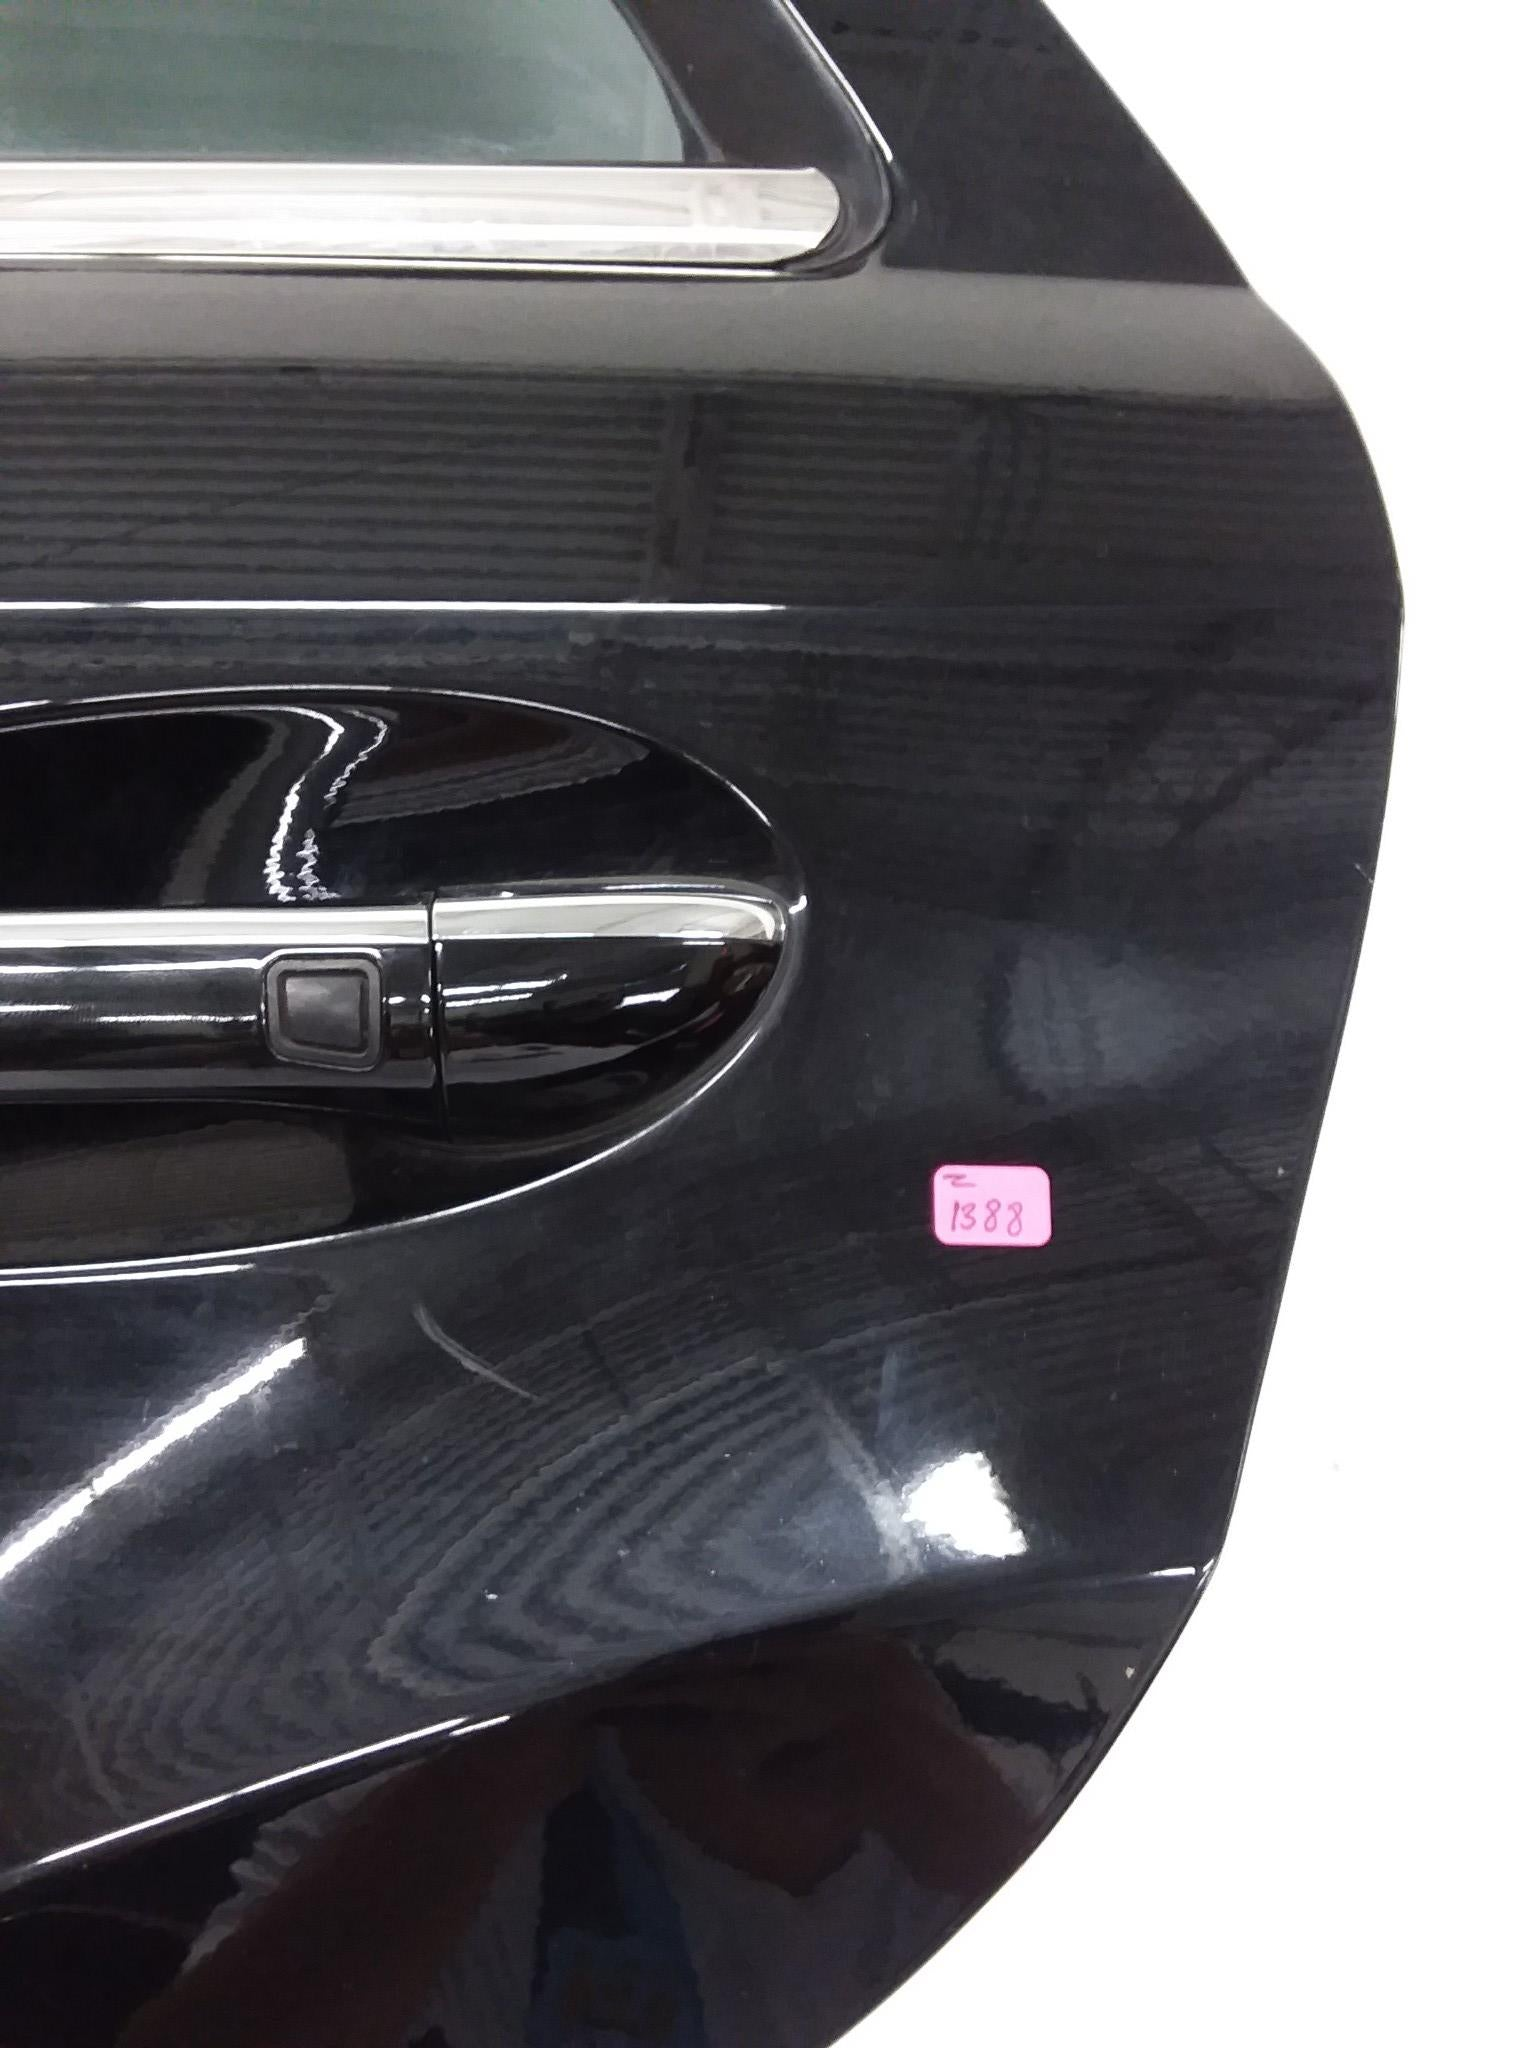 06-12 Mercedes W164 ML320 GL550 Rear Left Driver Side Exterior Door Black - Click Receive Auto Parts